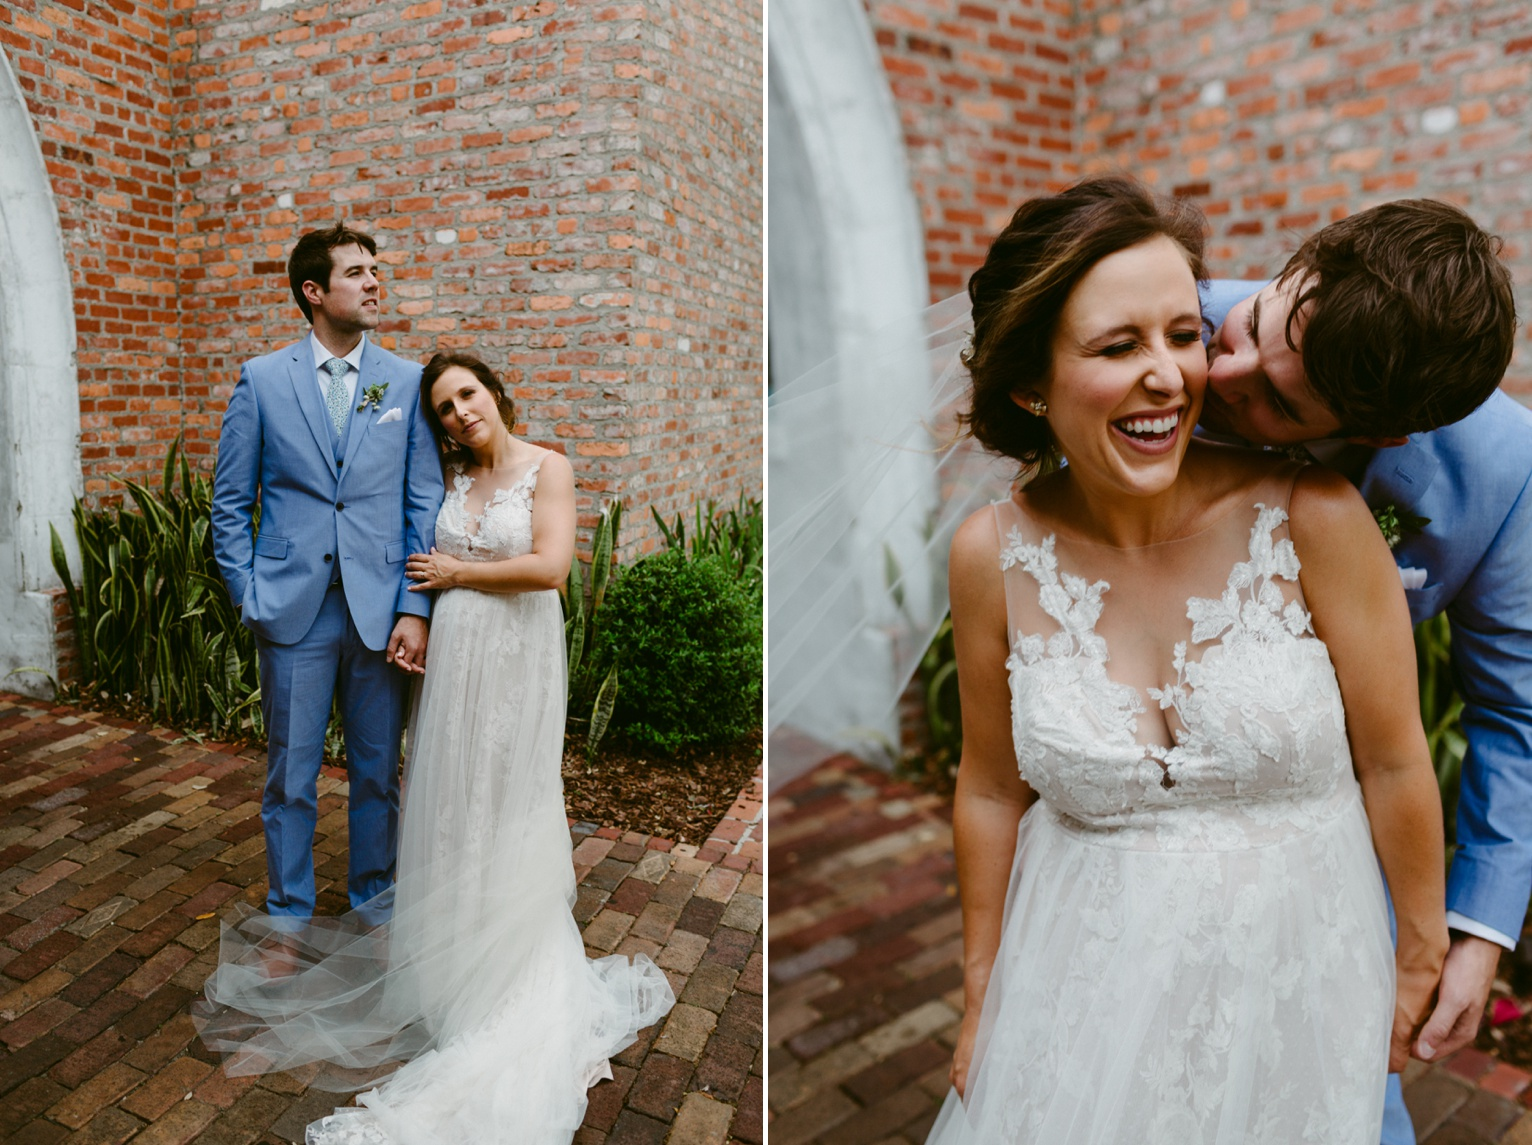 Dreamtownco.com_blog_Nick&Lindsay_Wedding_0113.jpg